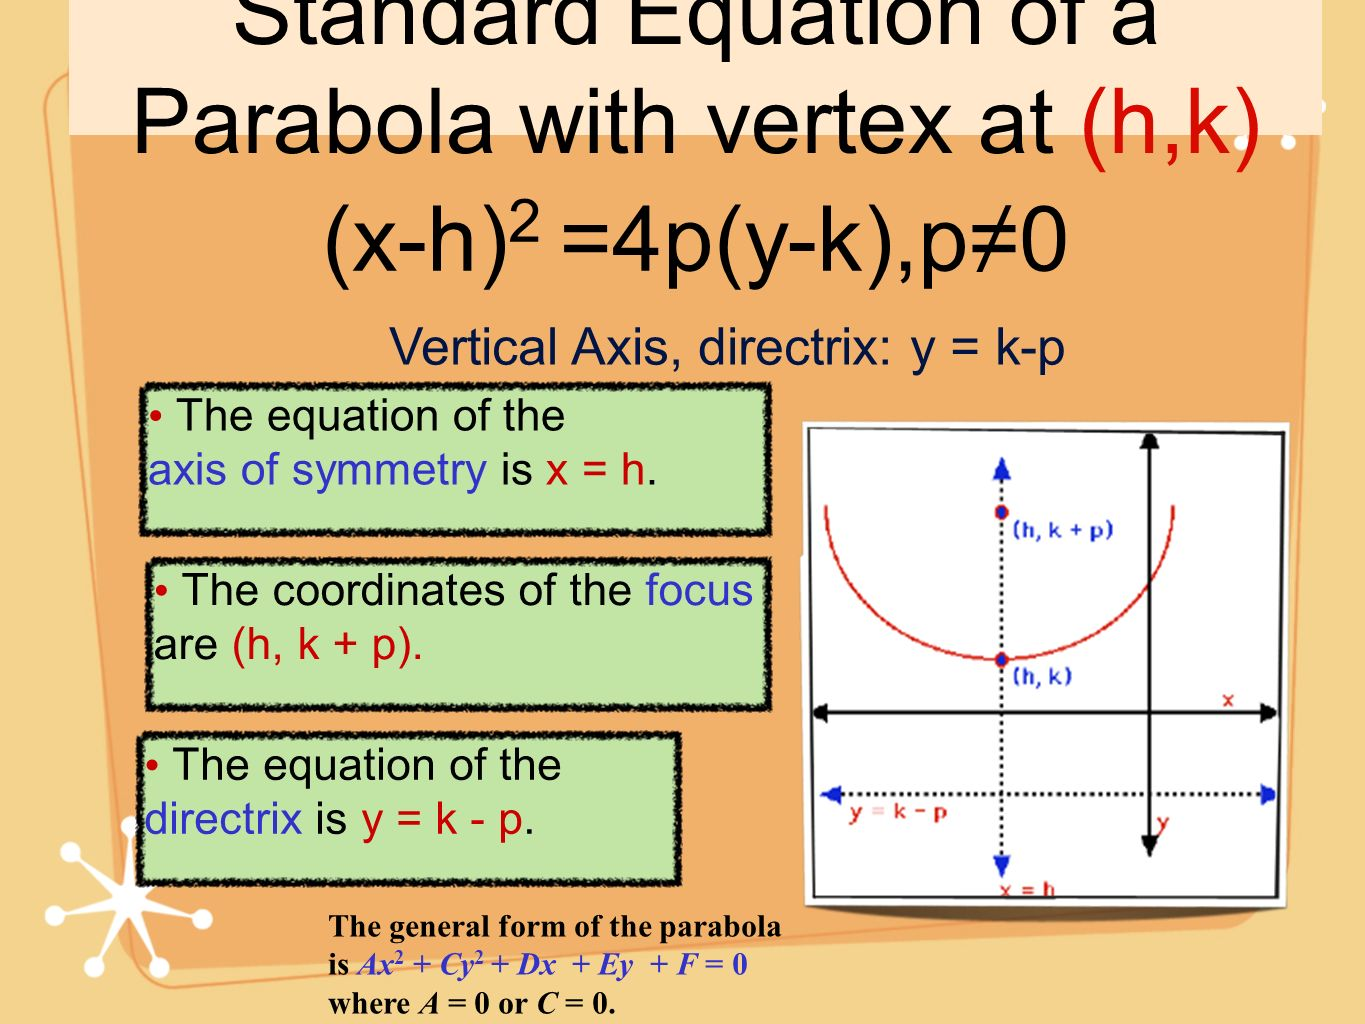 Standard Equation of a Parabola with vertex at (h,k)